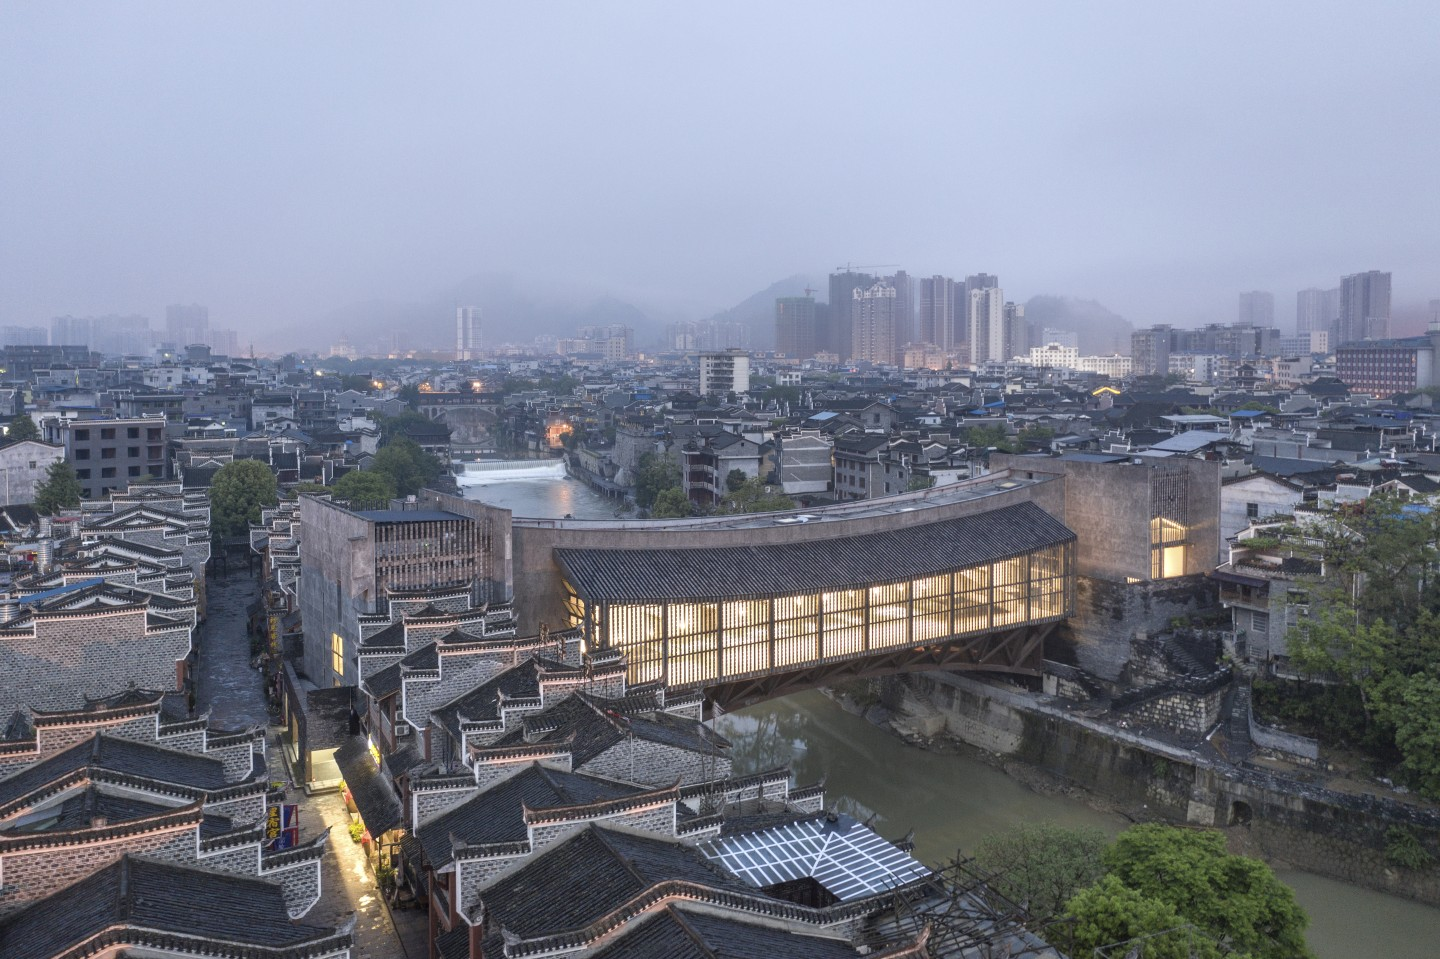 FCJZ 05 - 2019 吉首美术馆 Jishou Art Museum - 鸟瞰 Bird_s-eye view - Photo by Tian Fangfang